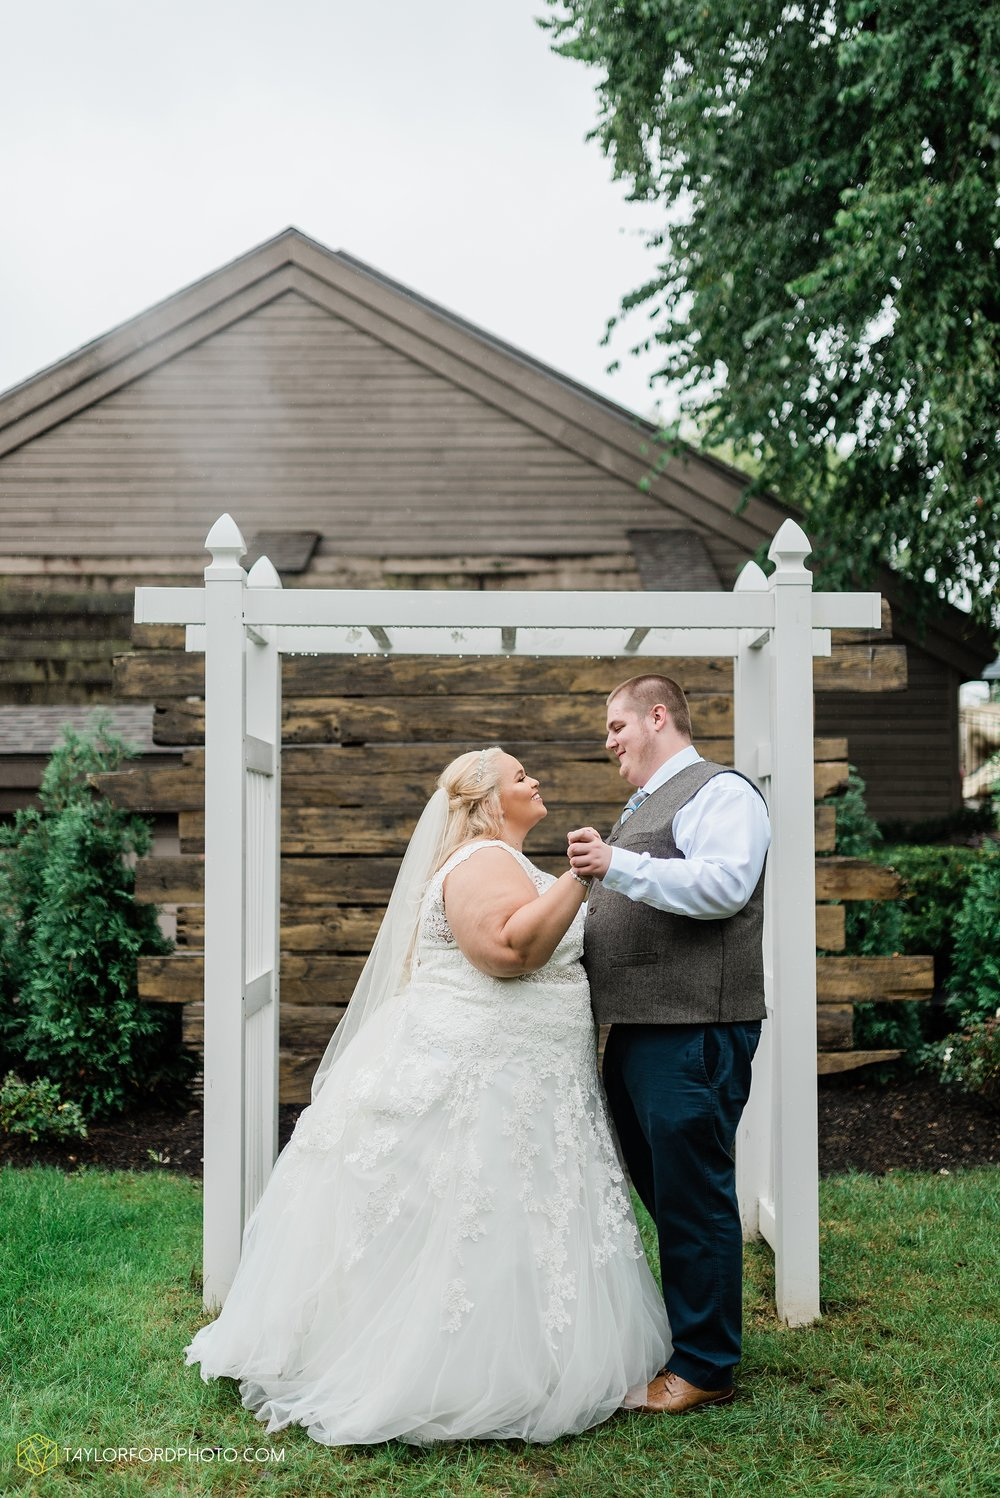 kearsten-alex-trame-watersedge-wedding-venue-rainy-day-columbus-hilliard-ohio-wedding-photographer-taylor-ford-photography_0247.jpg